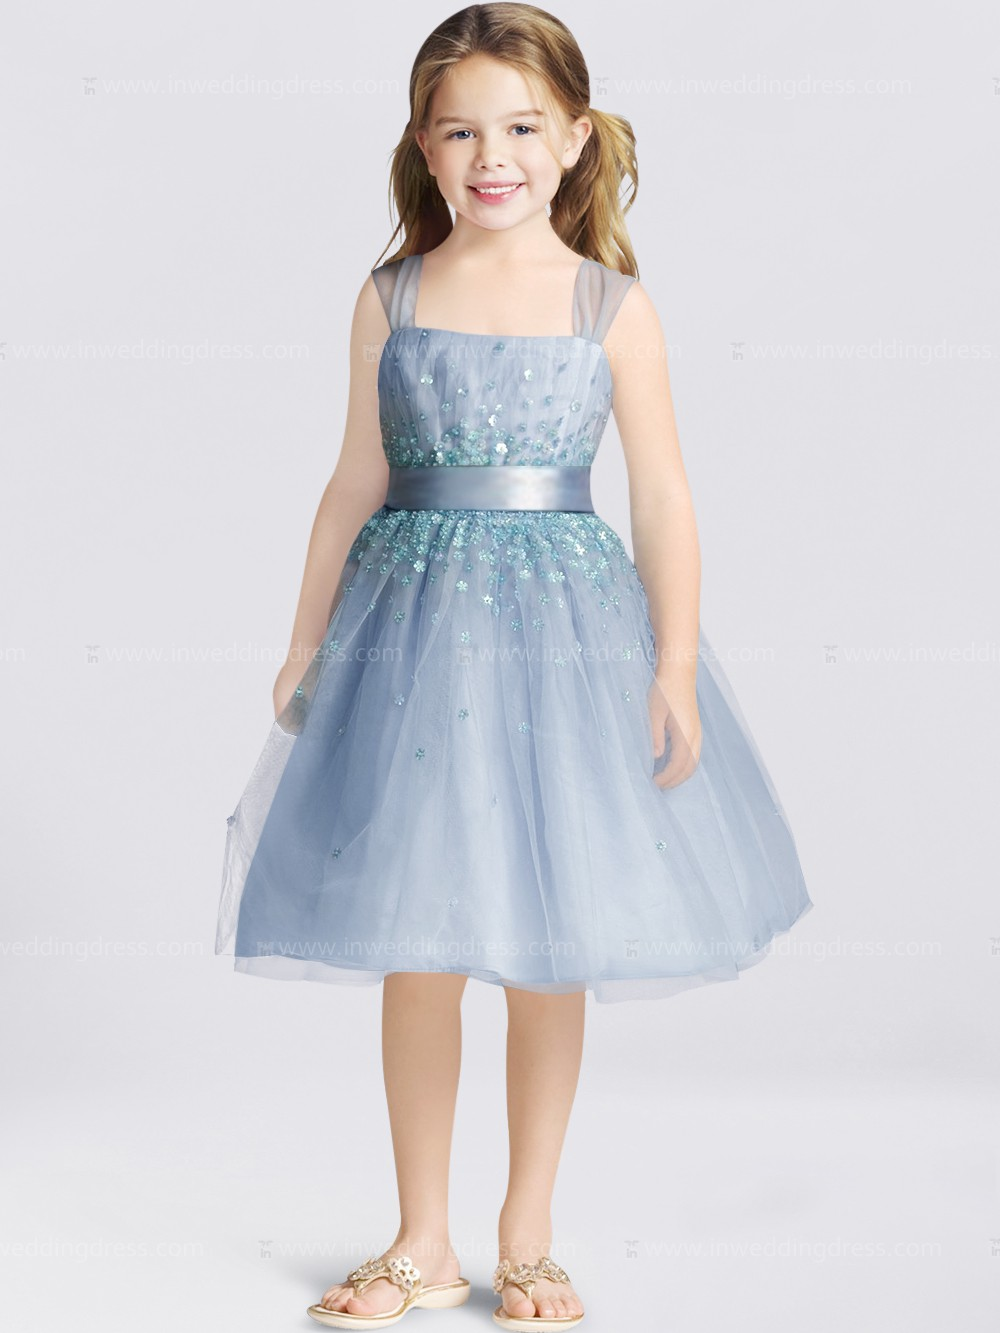 Discount Flower Girl Dresses FL094 | InWeddingDress